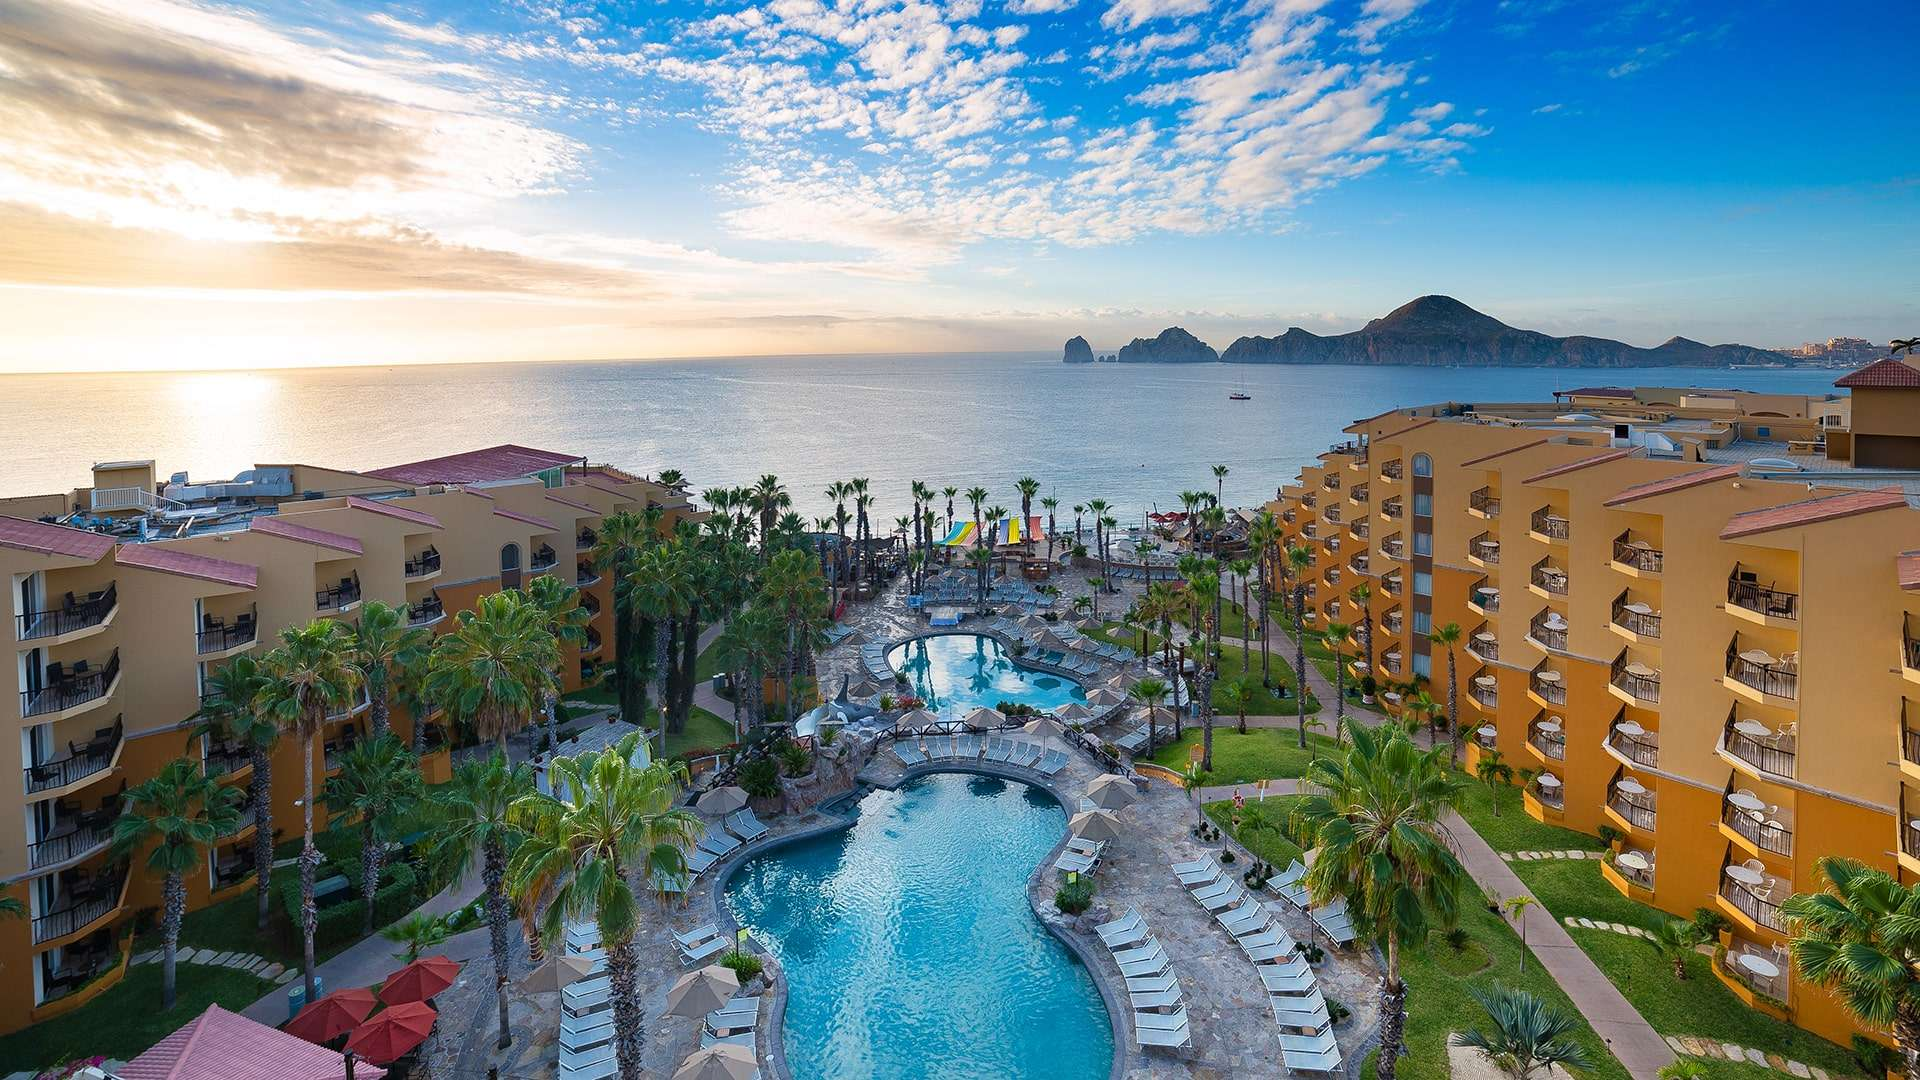 Villa Del Palmar Cabo San Lucas Wins Tripadvisor Travelers Choice Awards